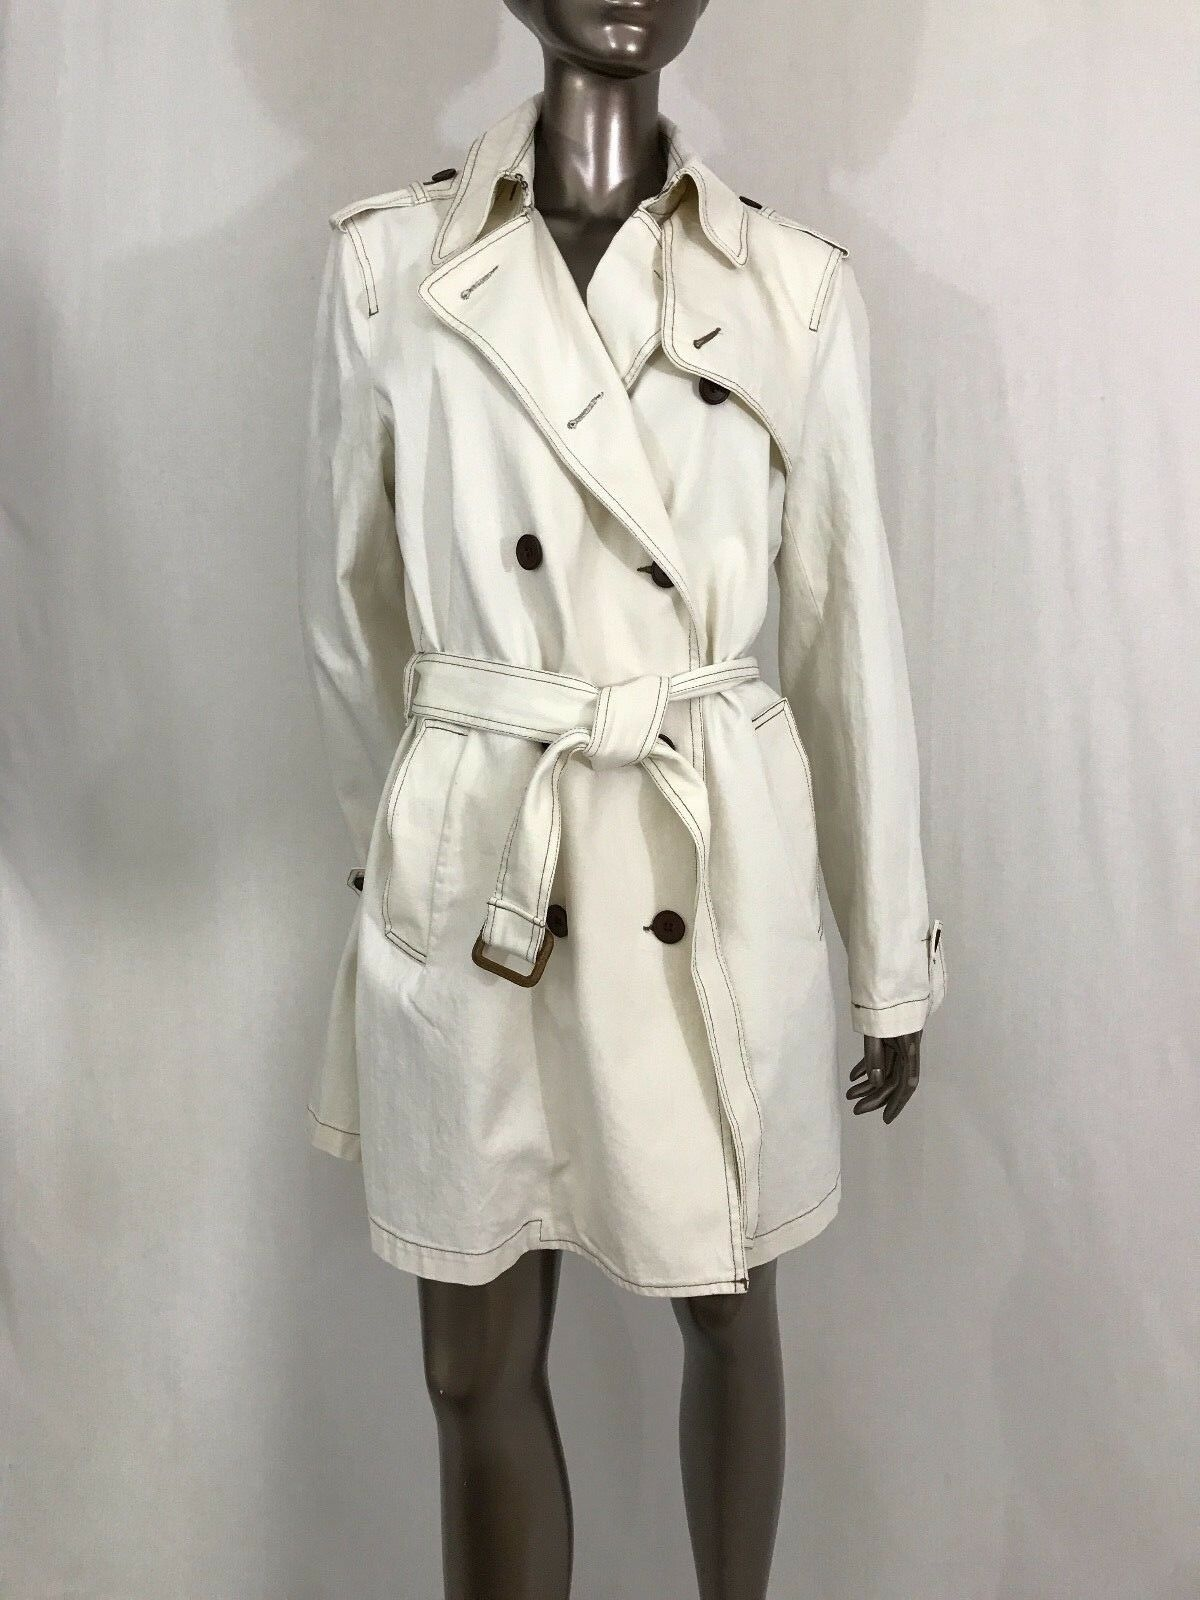 NWT BCBG Max Azria trench coat denim off white double breasted size L